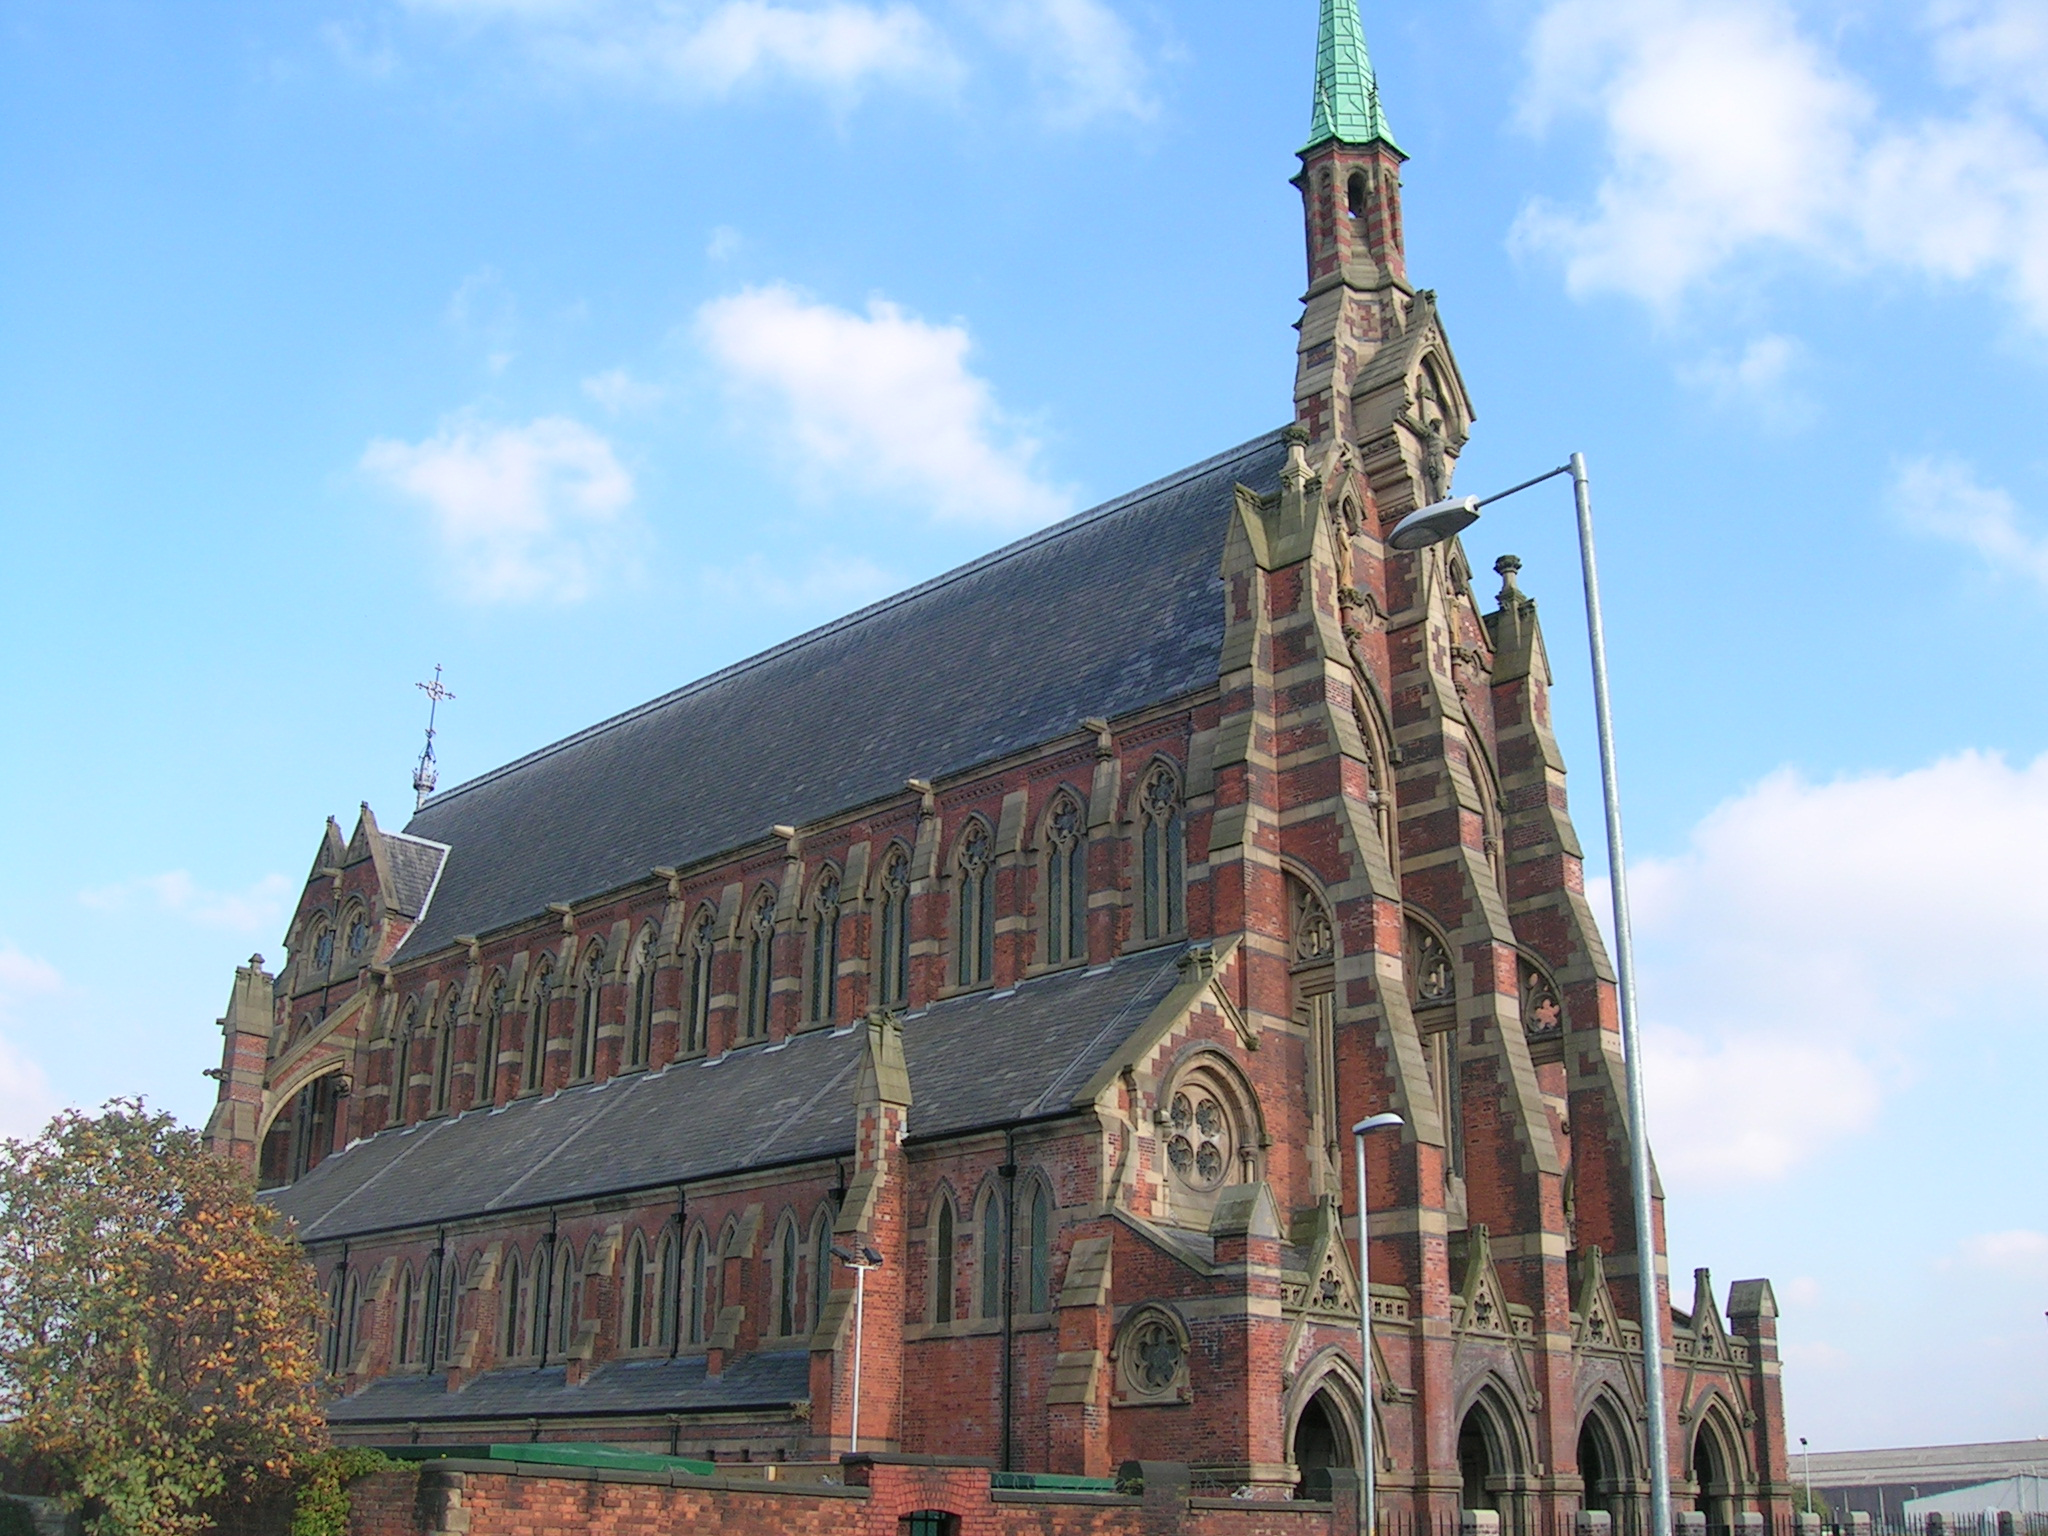 https://upload.wikimedia.org/wikipedia/commons/1/18/Gorton_Monastery%2C_Gorton.jpg?uselang=en-gb